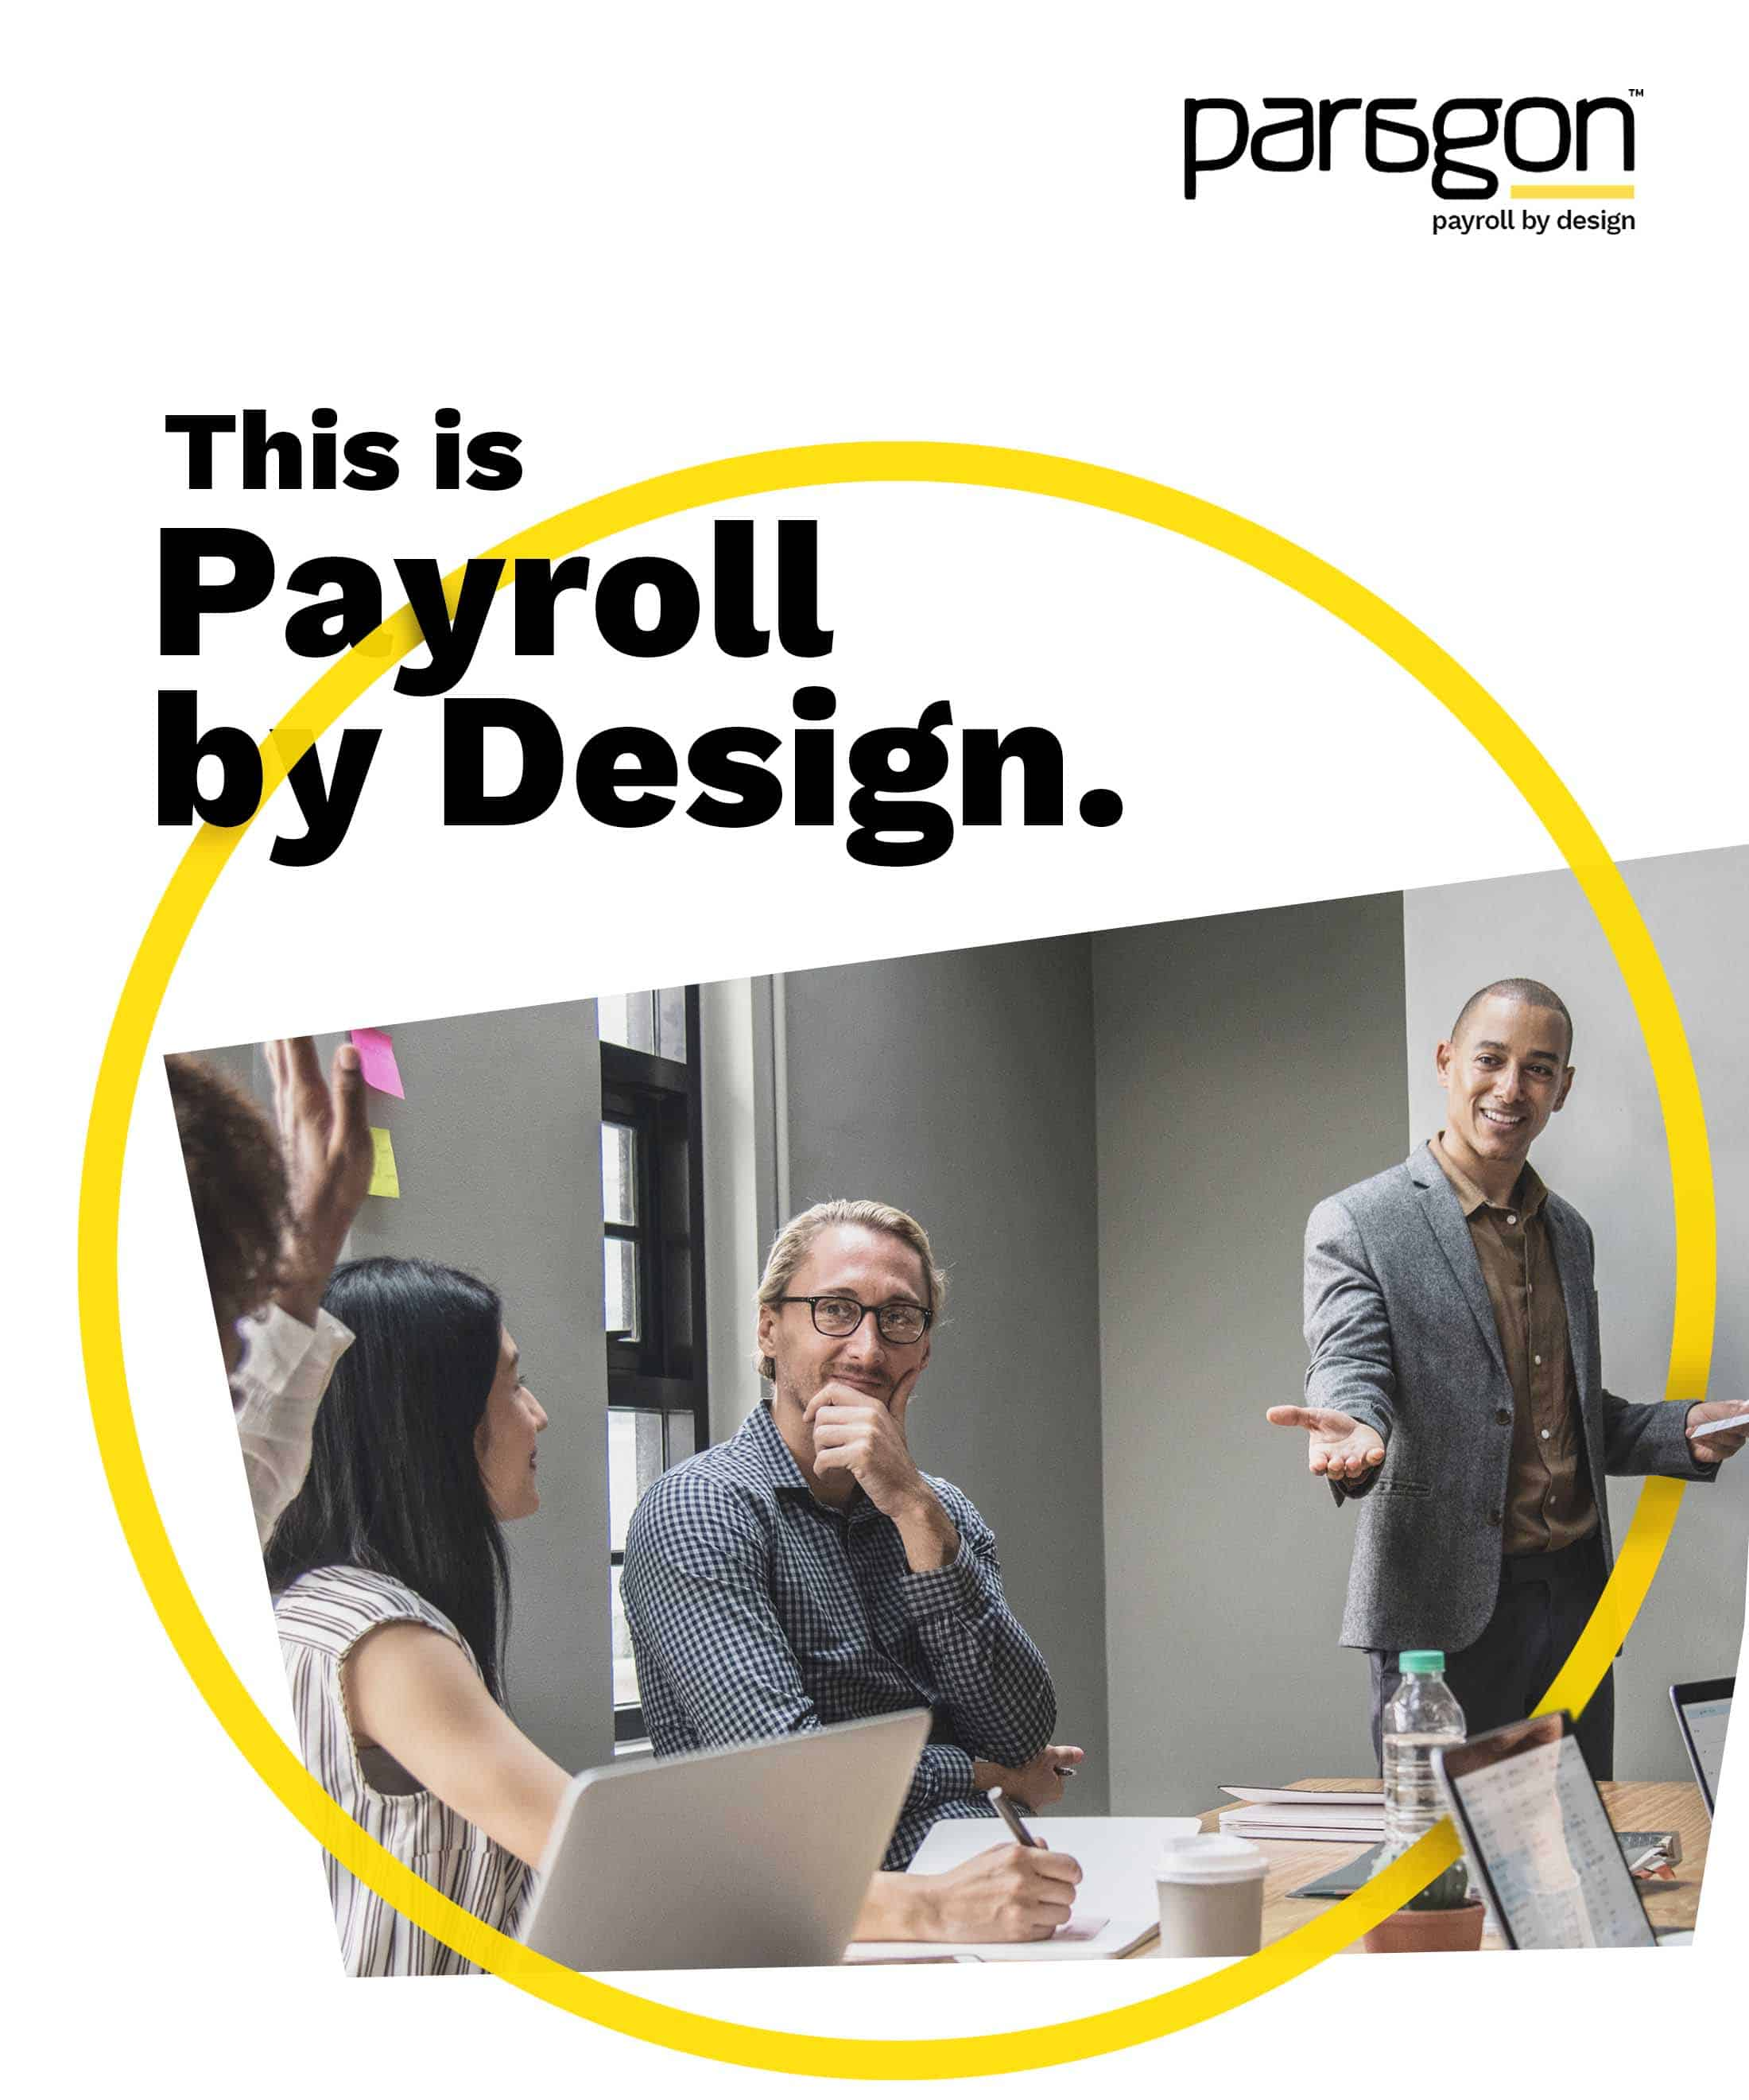 This is payroll by design.